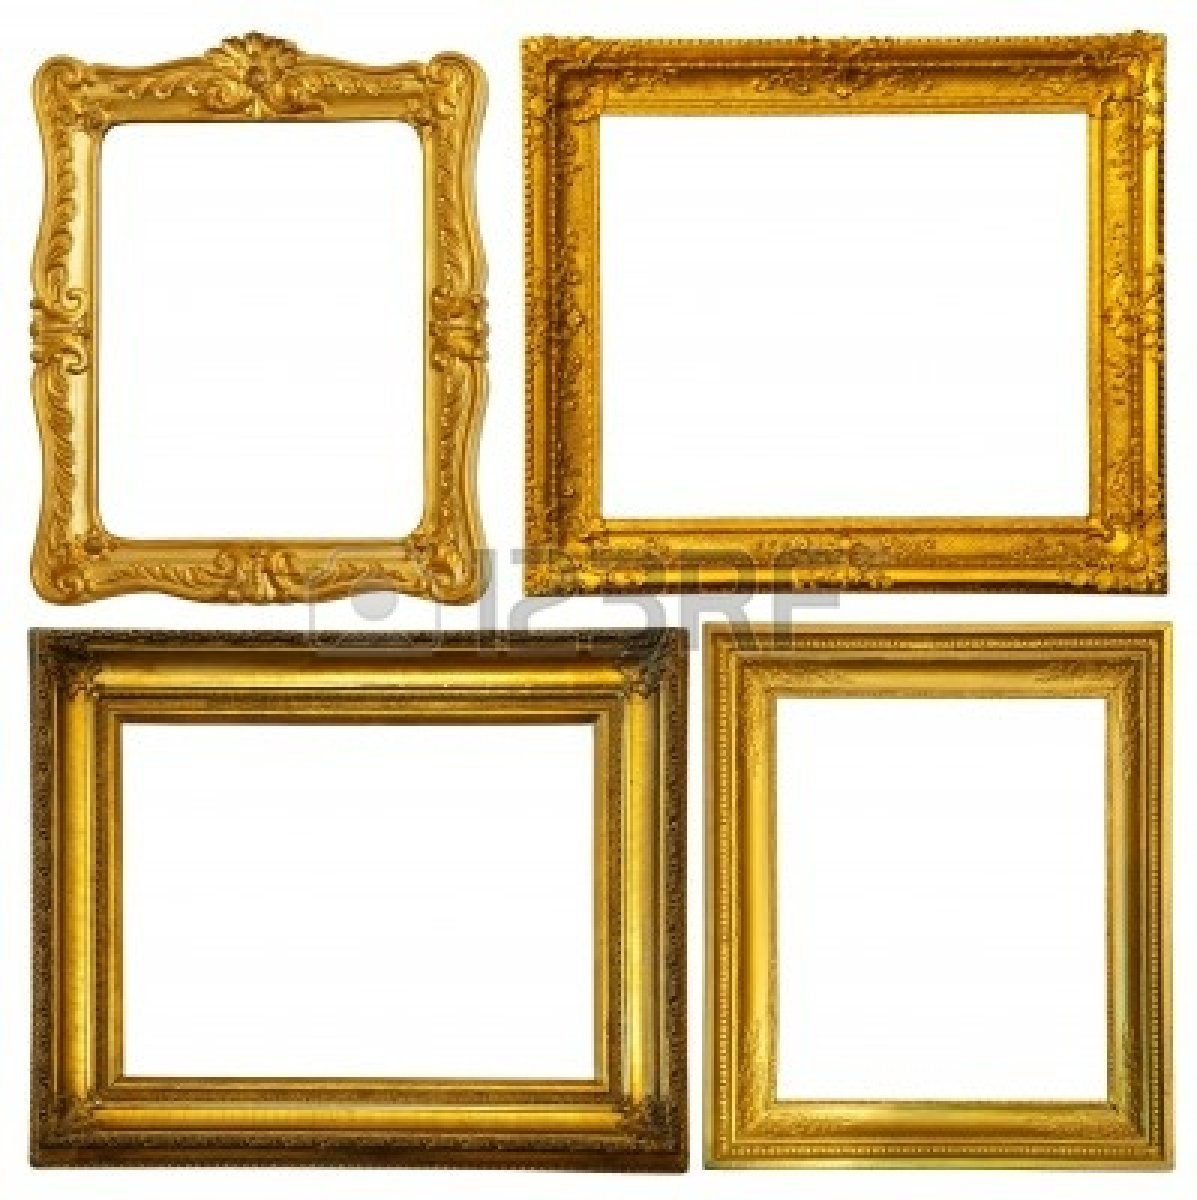 ornate gold frame 9059975 set of few gold frame isolated over white